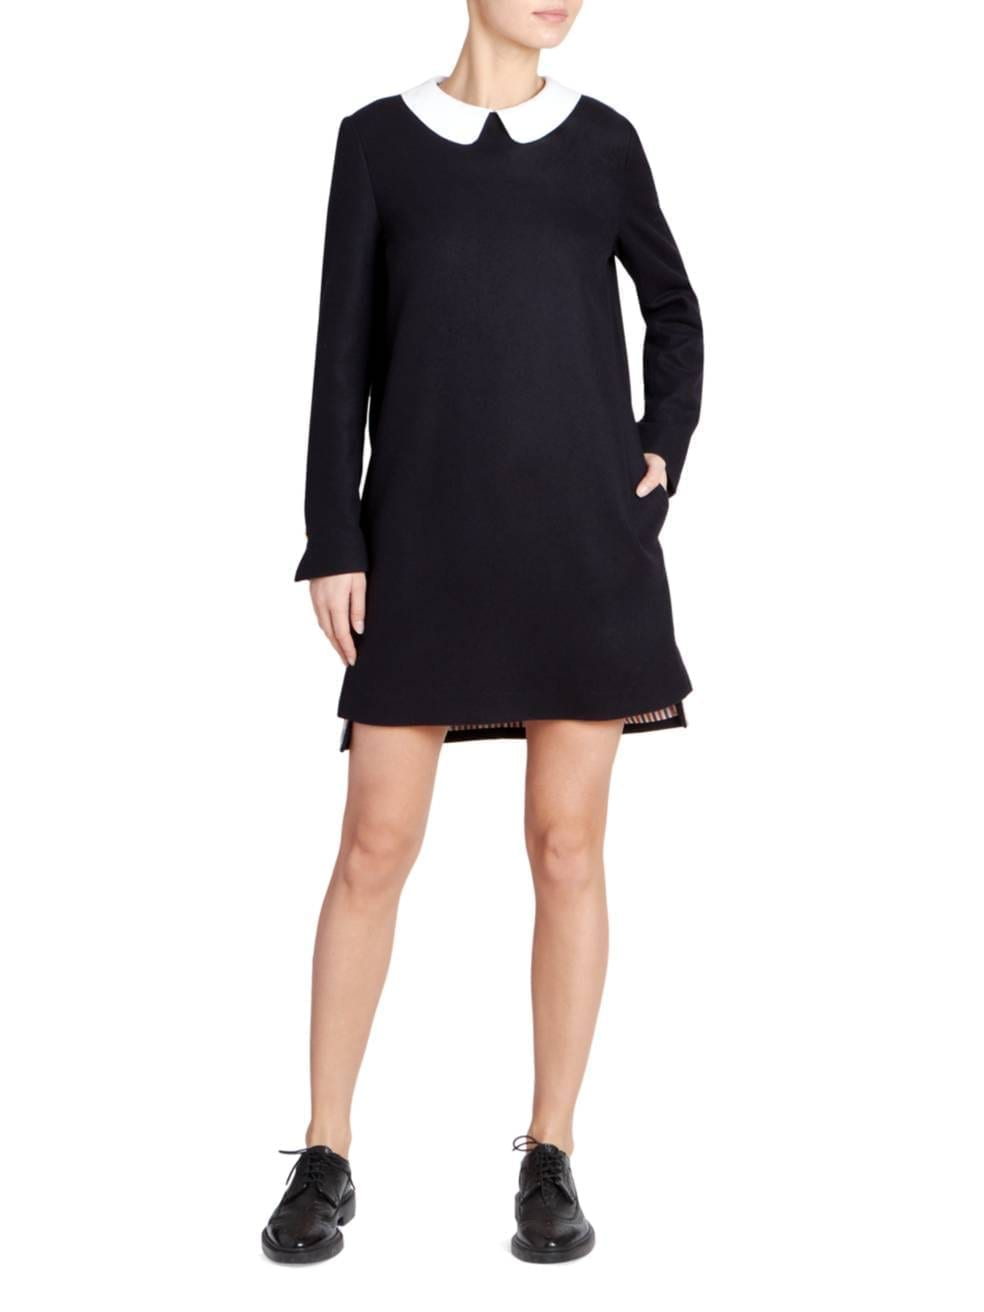 THOM BROWNE Collared Cashmere Shift Dress